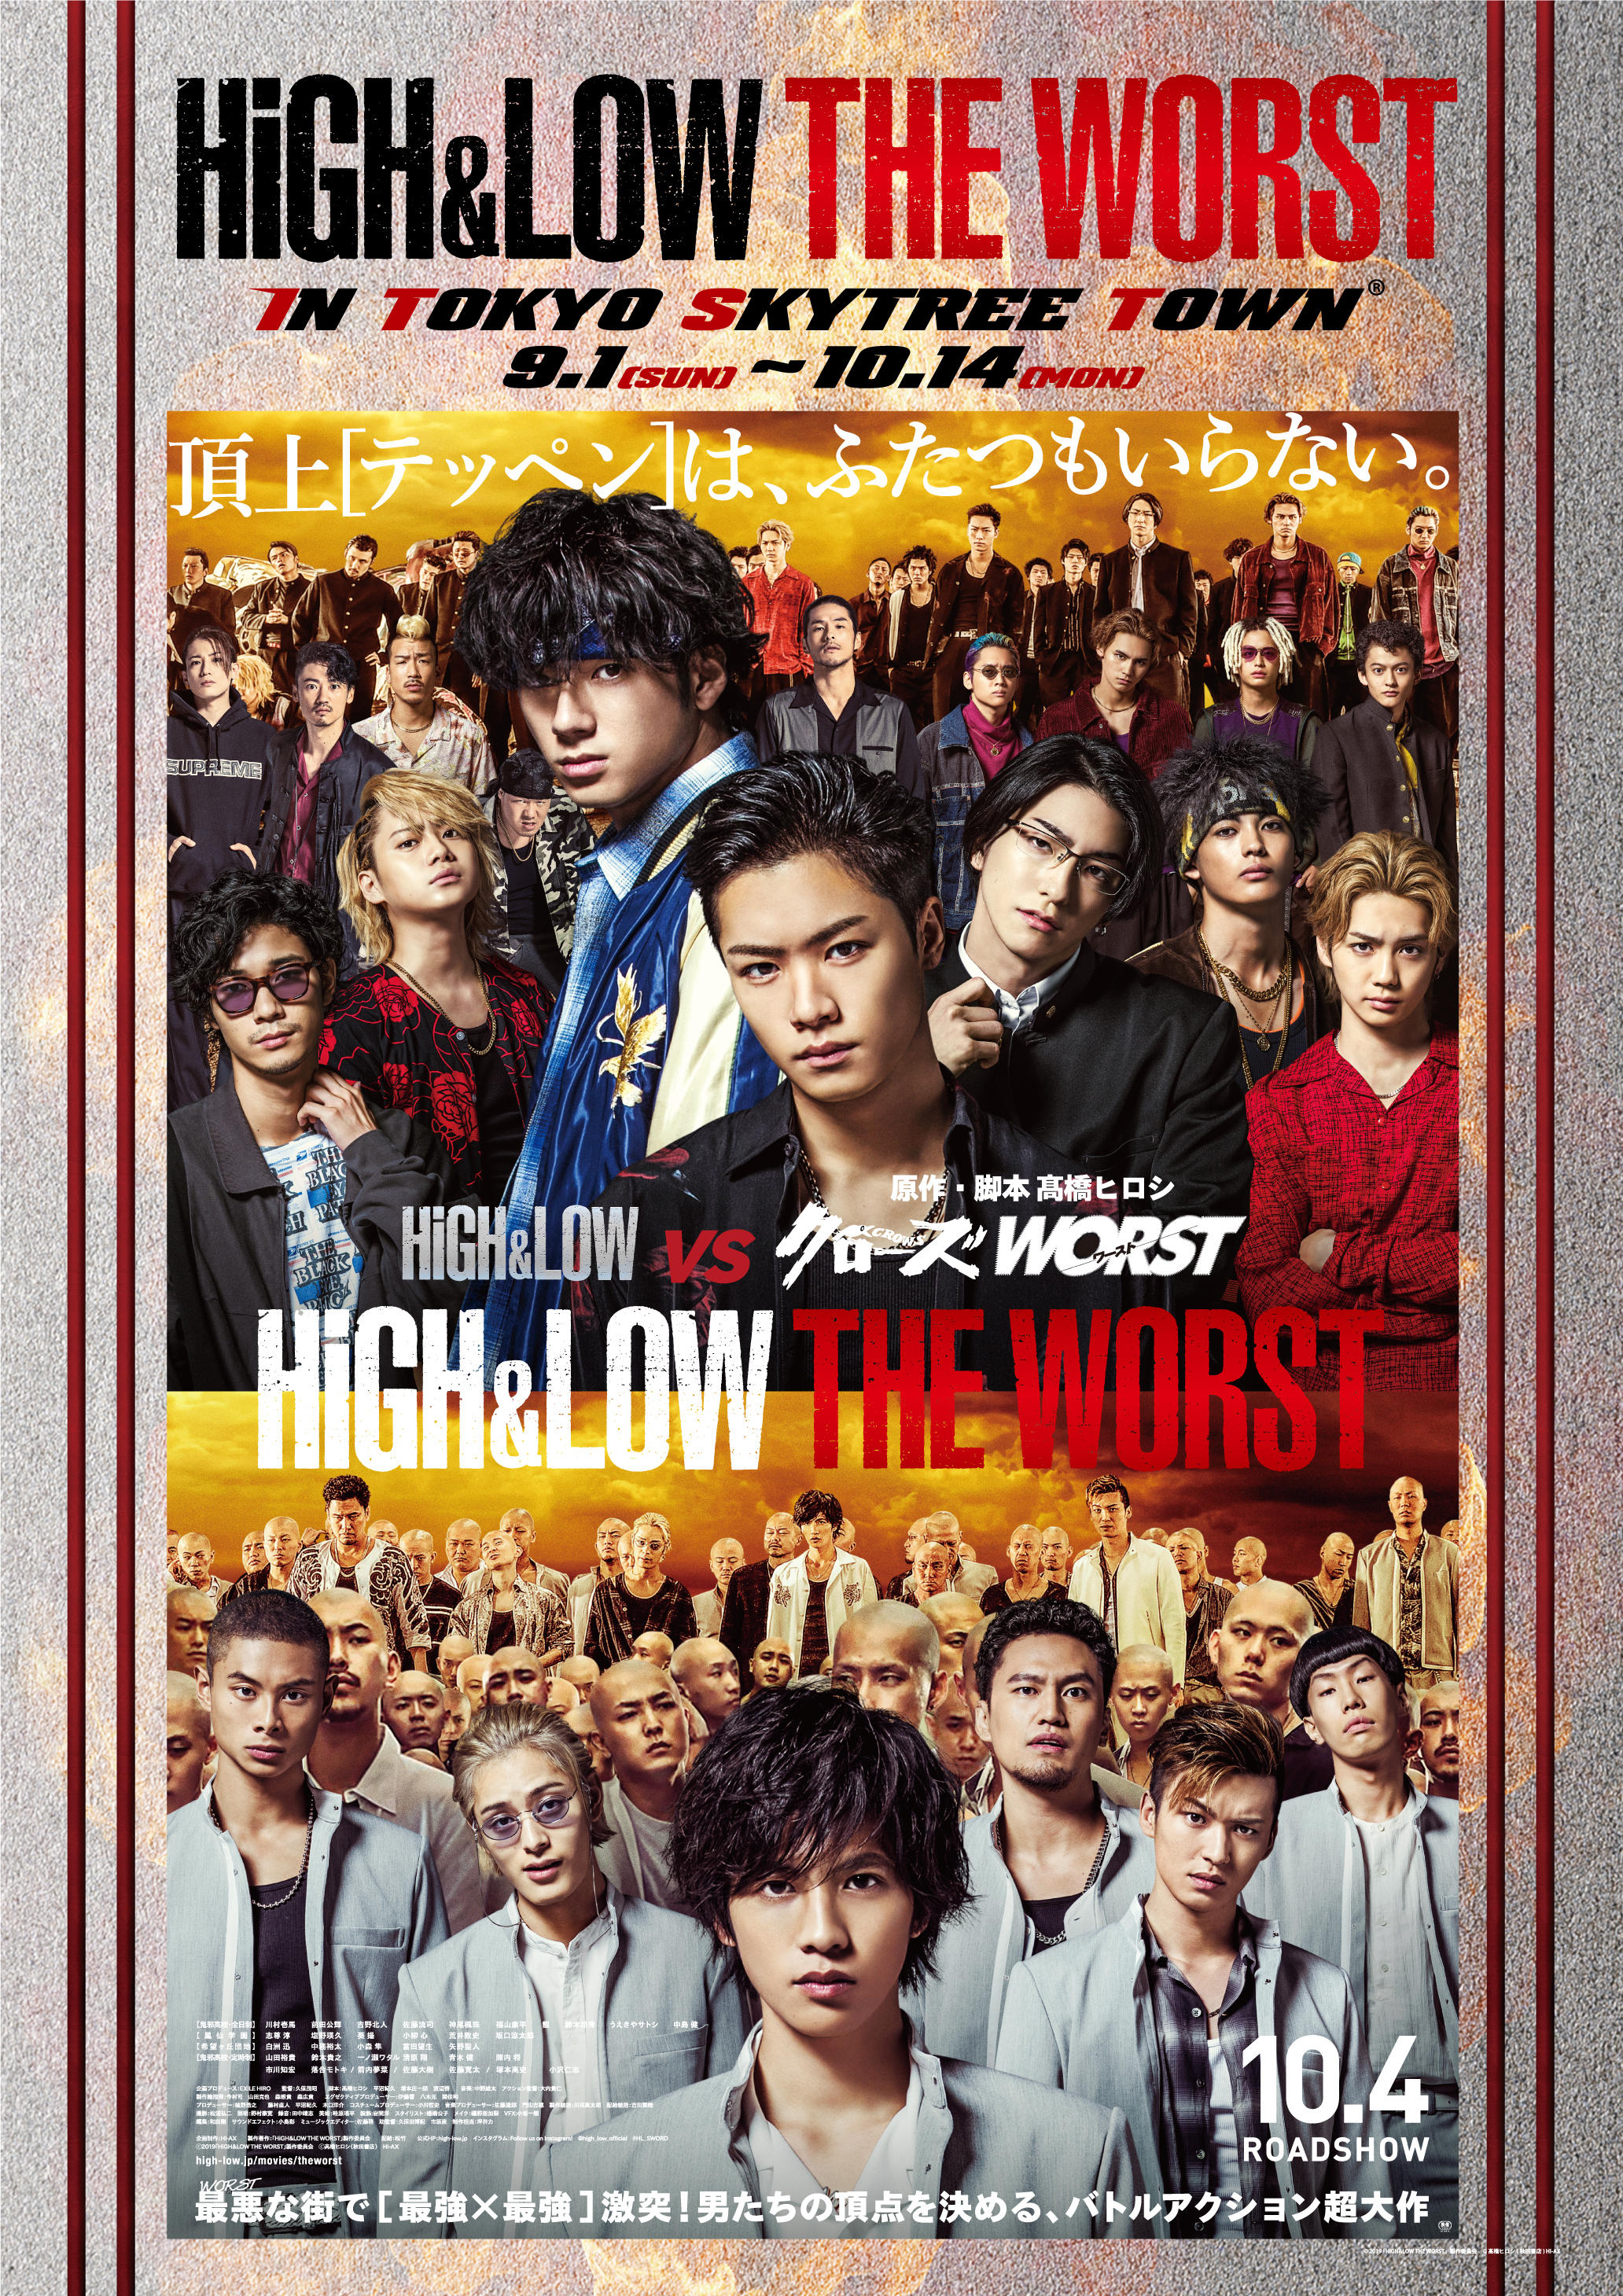 【ポスター画像】HiGH&LOW THE WORST.jpg